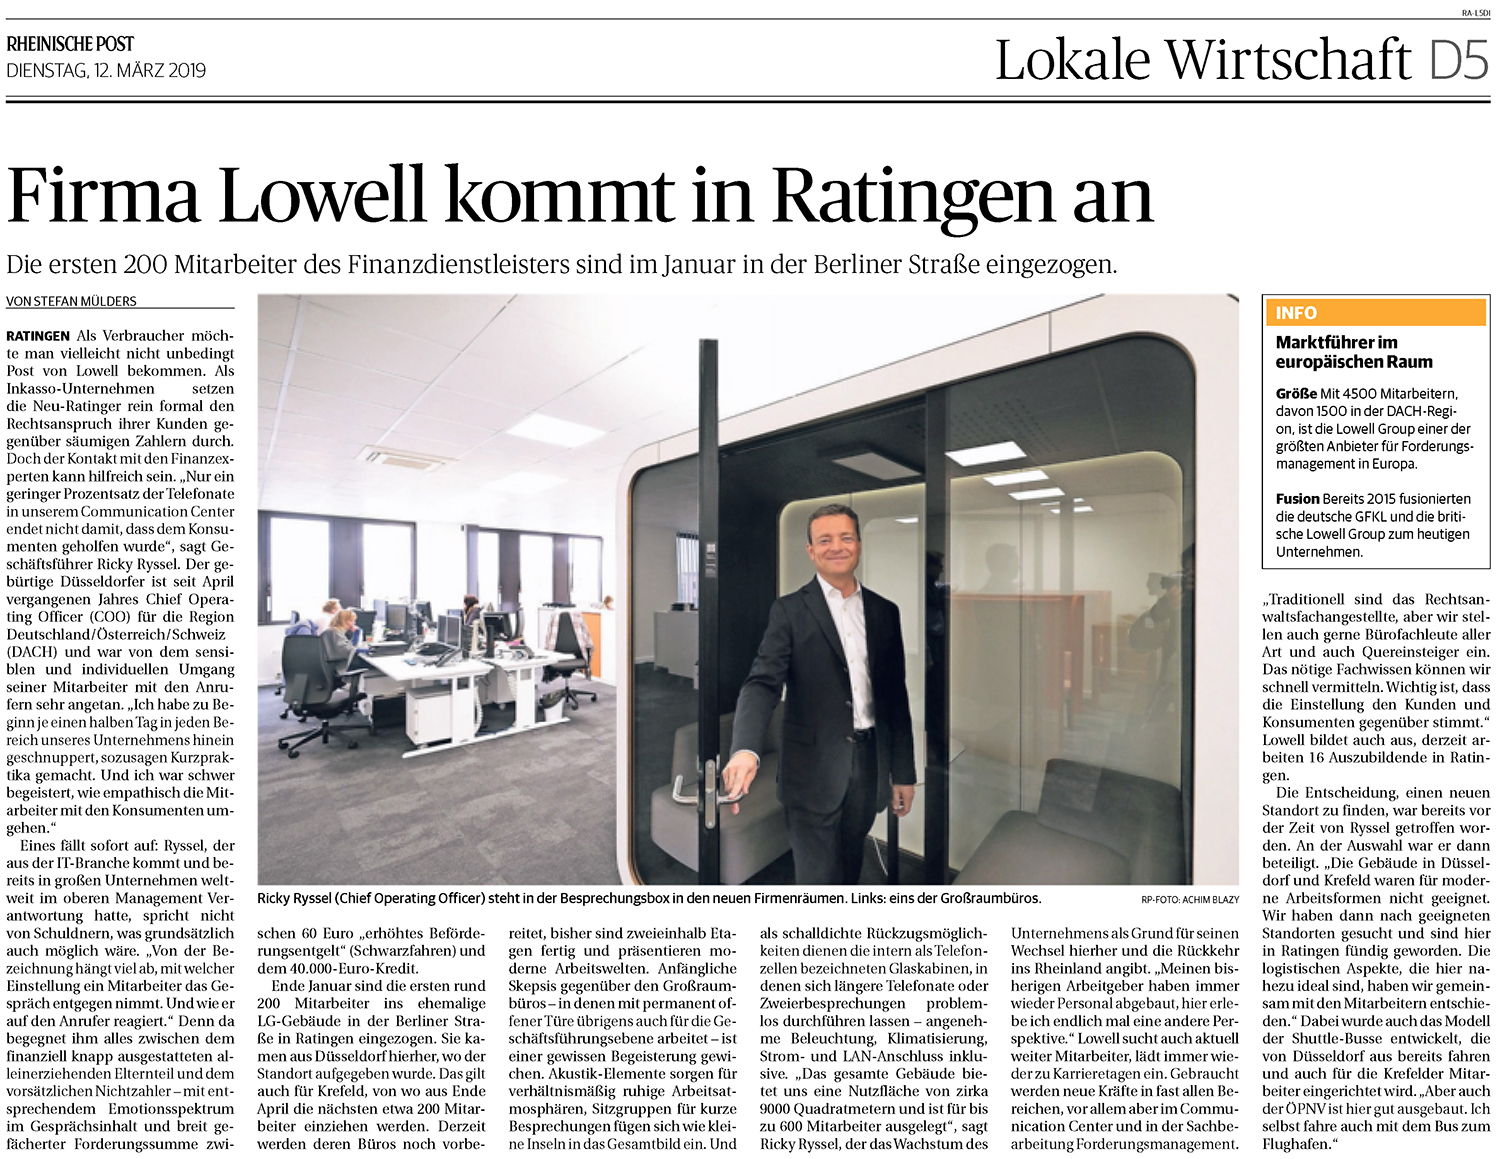 190312 Firma Lowell kommt in Ratingen an